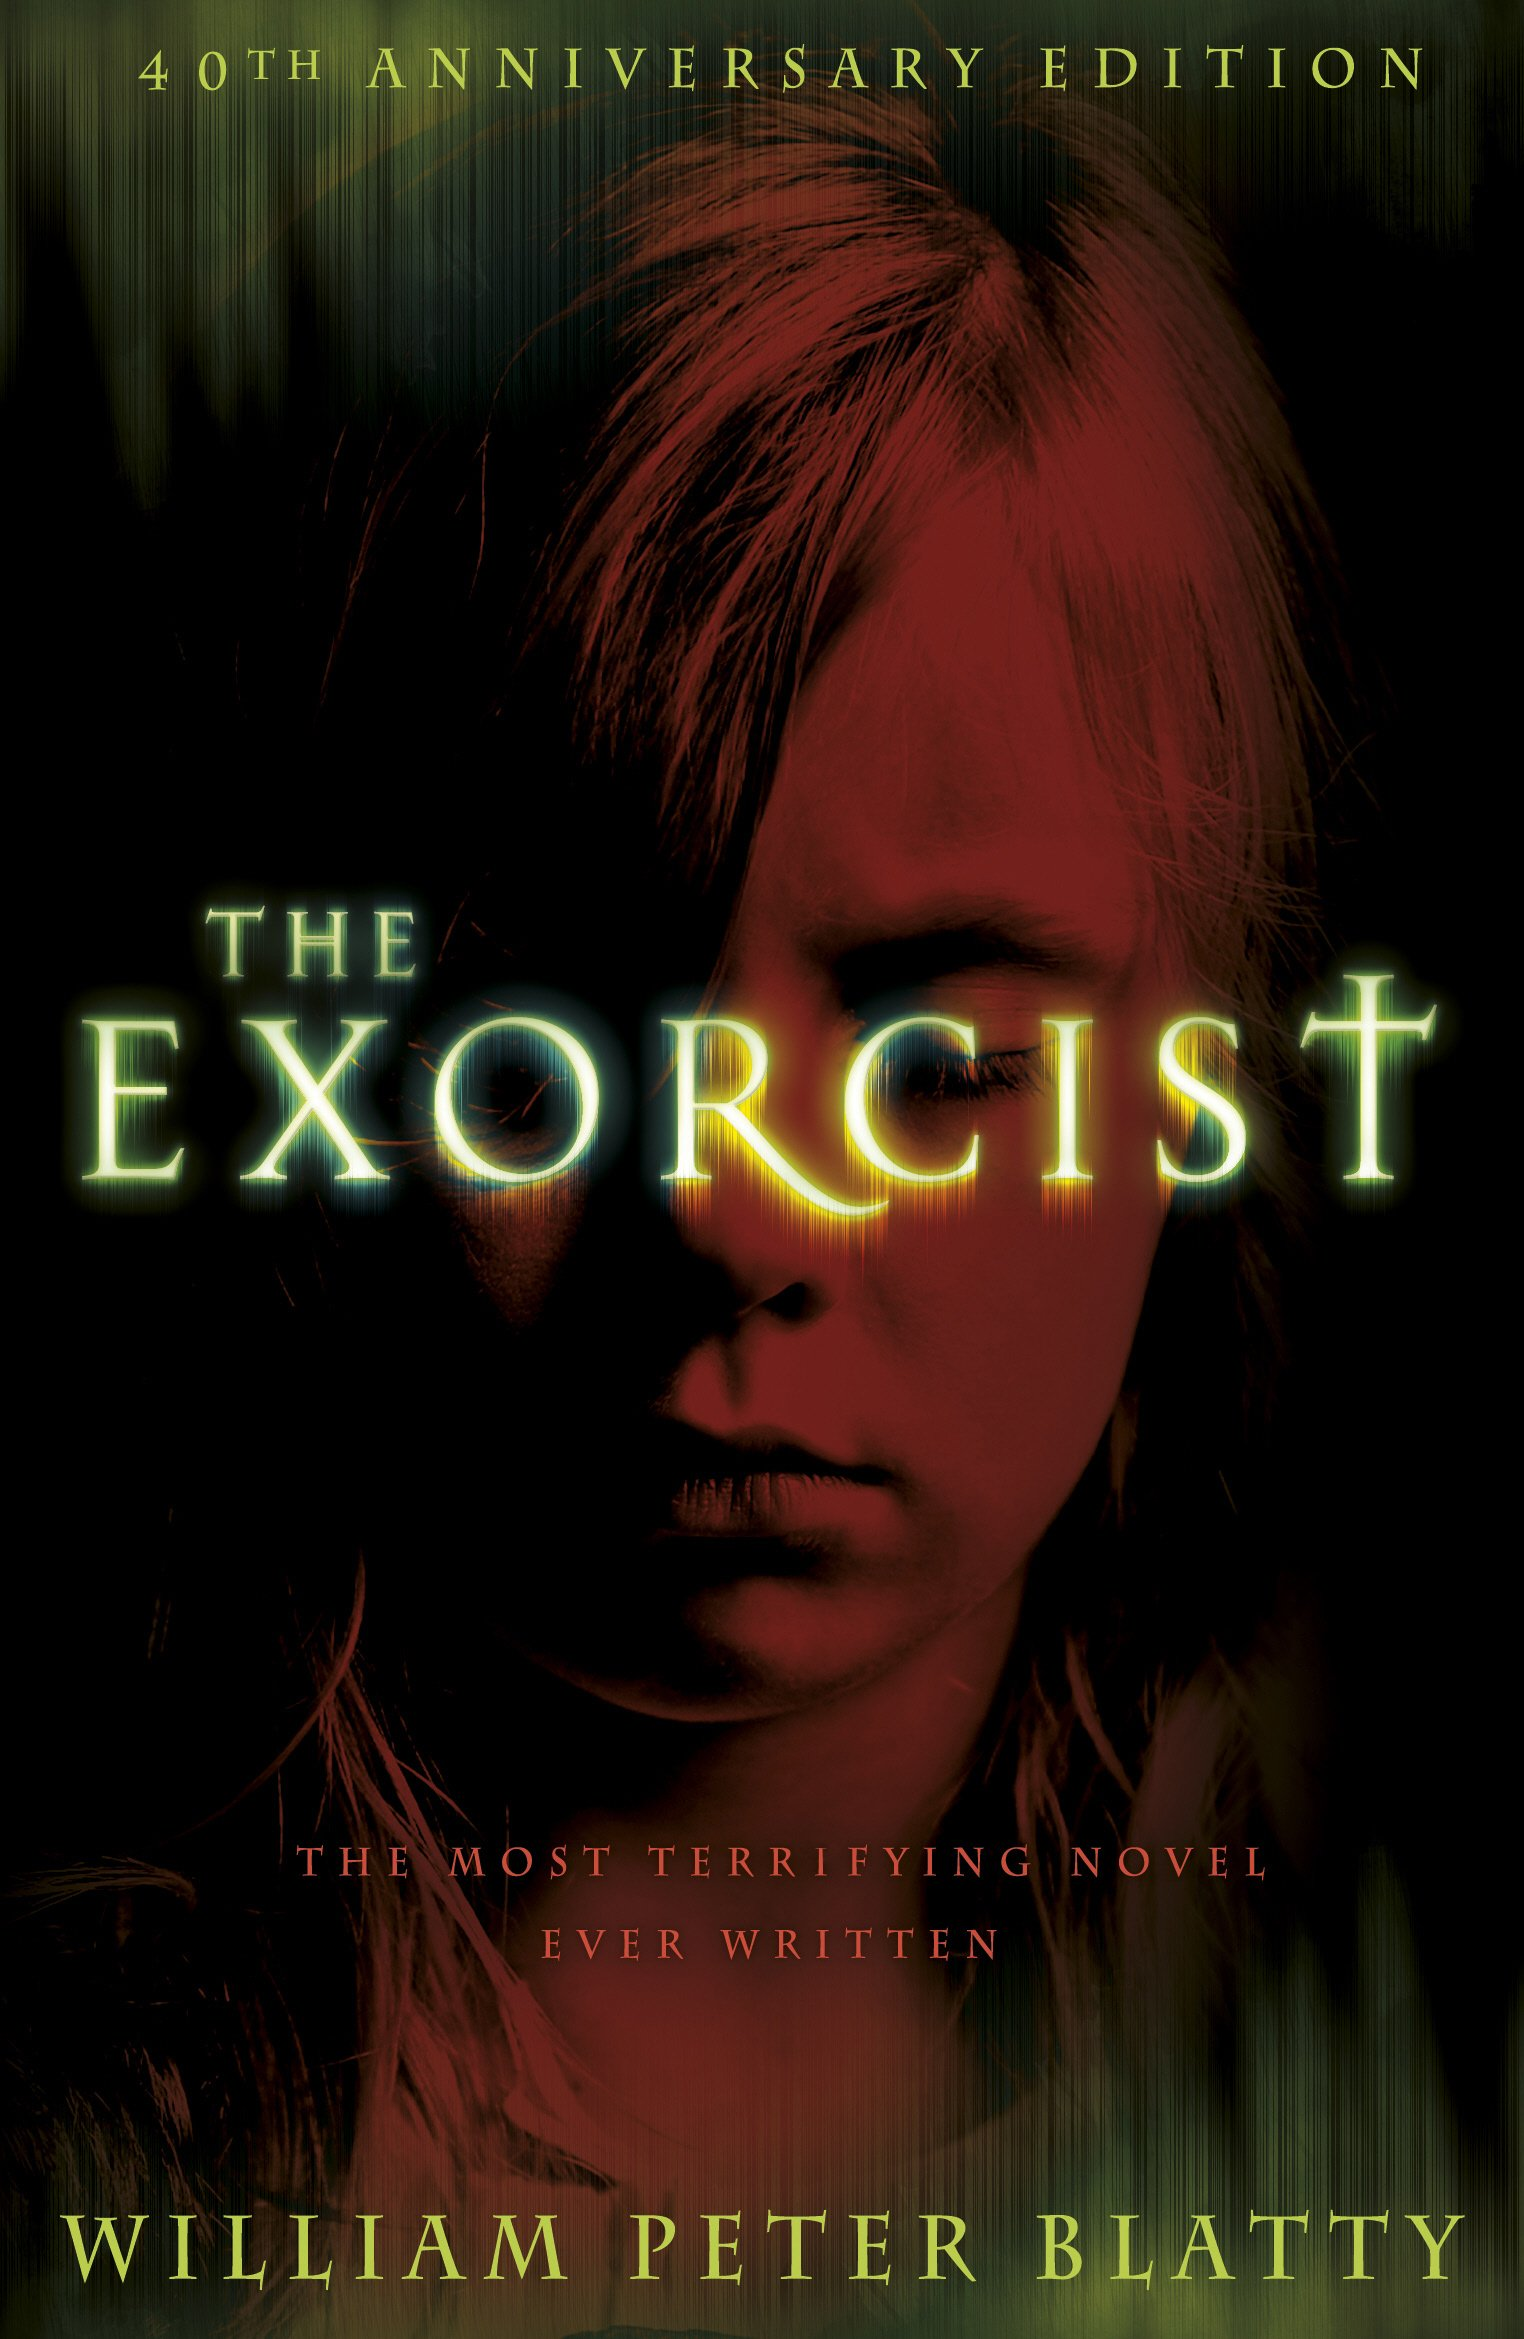 who wrote the exorcist